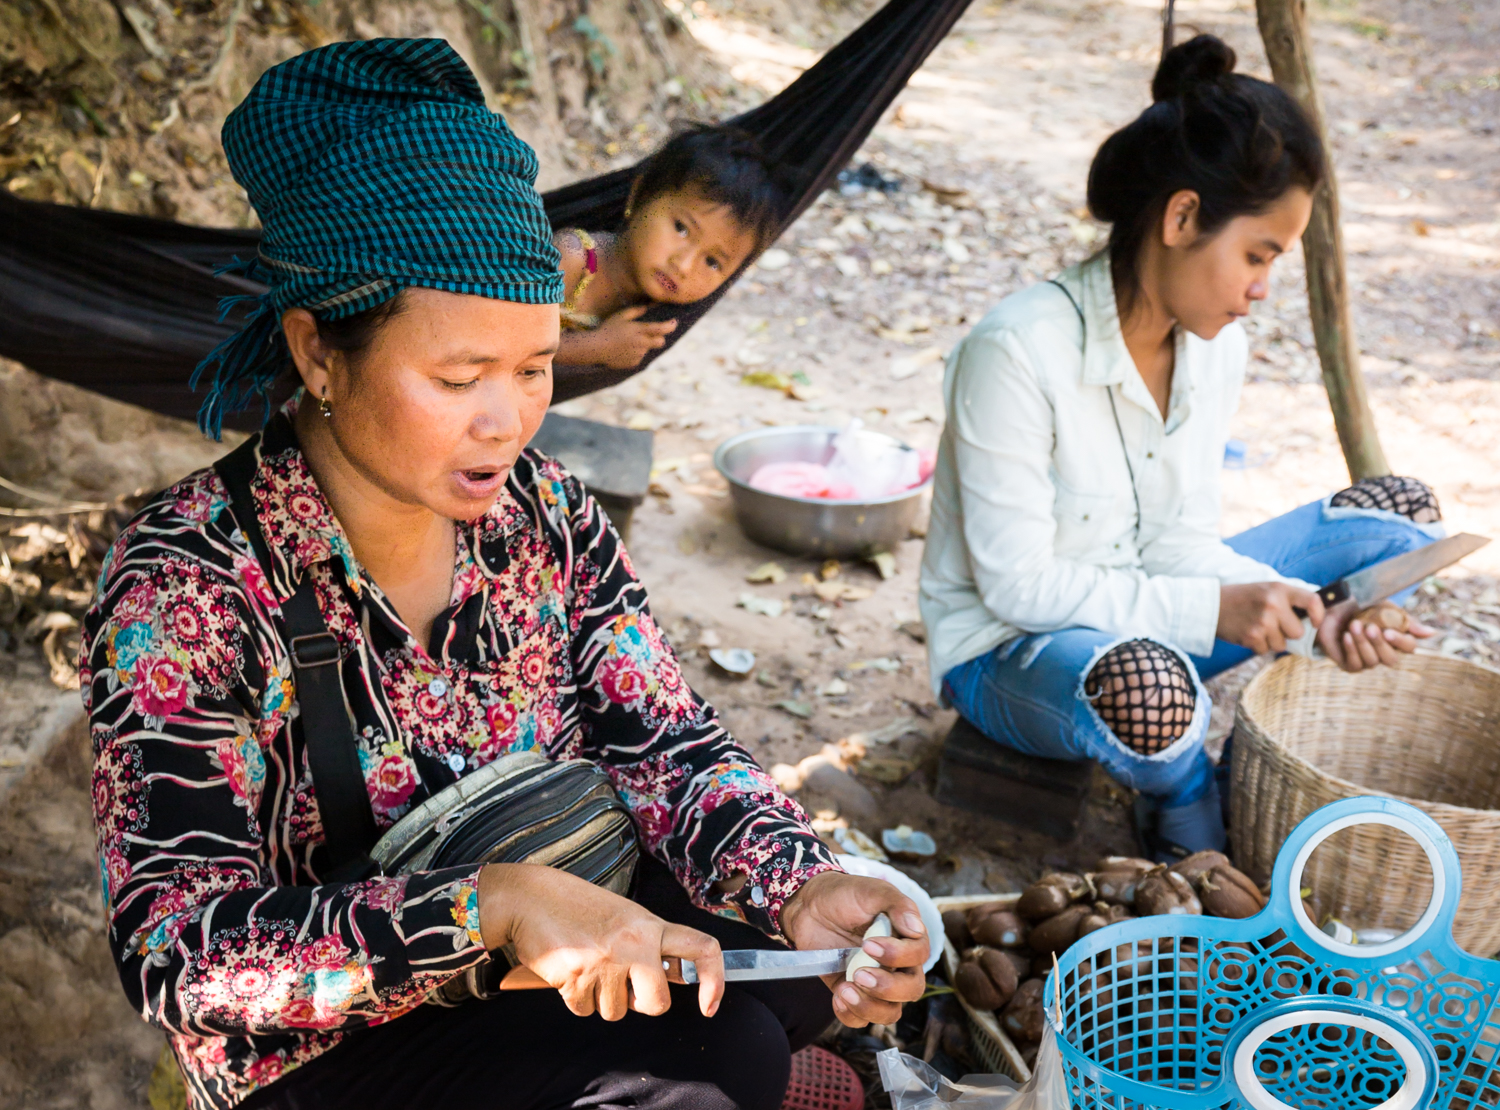 women-cutting-fruit-roadside-siem-reap-cambodia.jpg